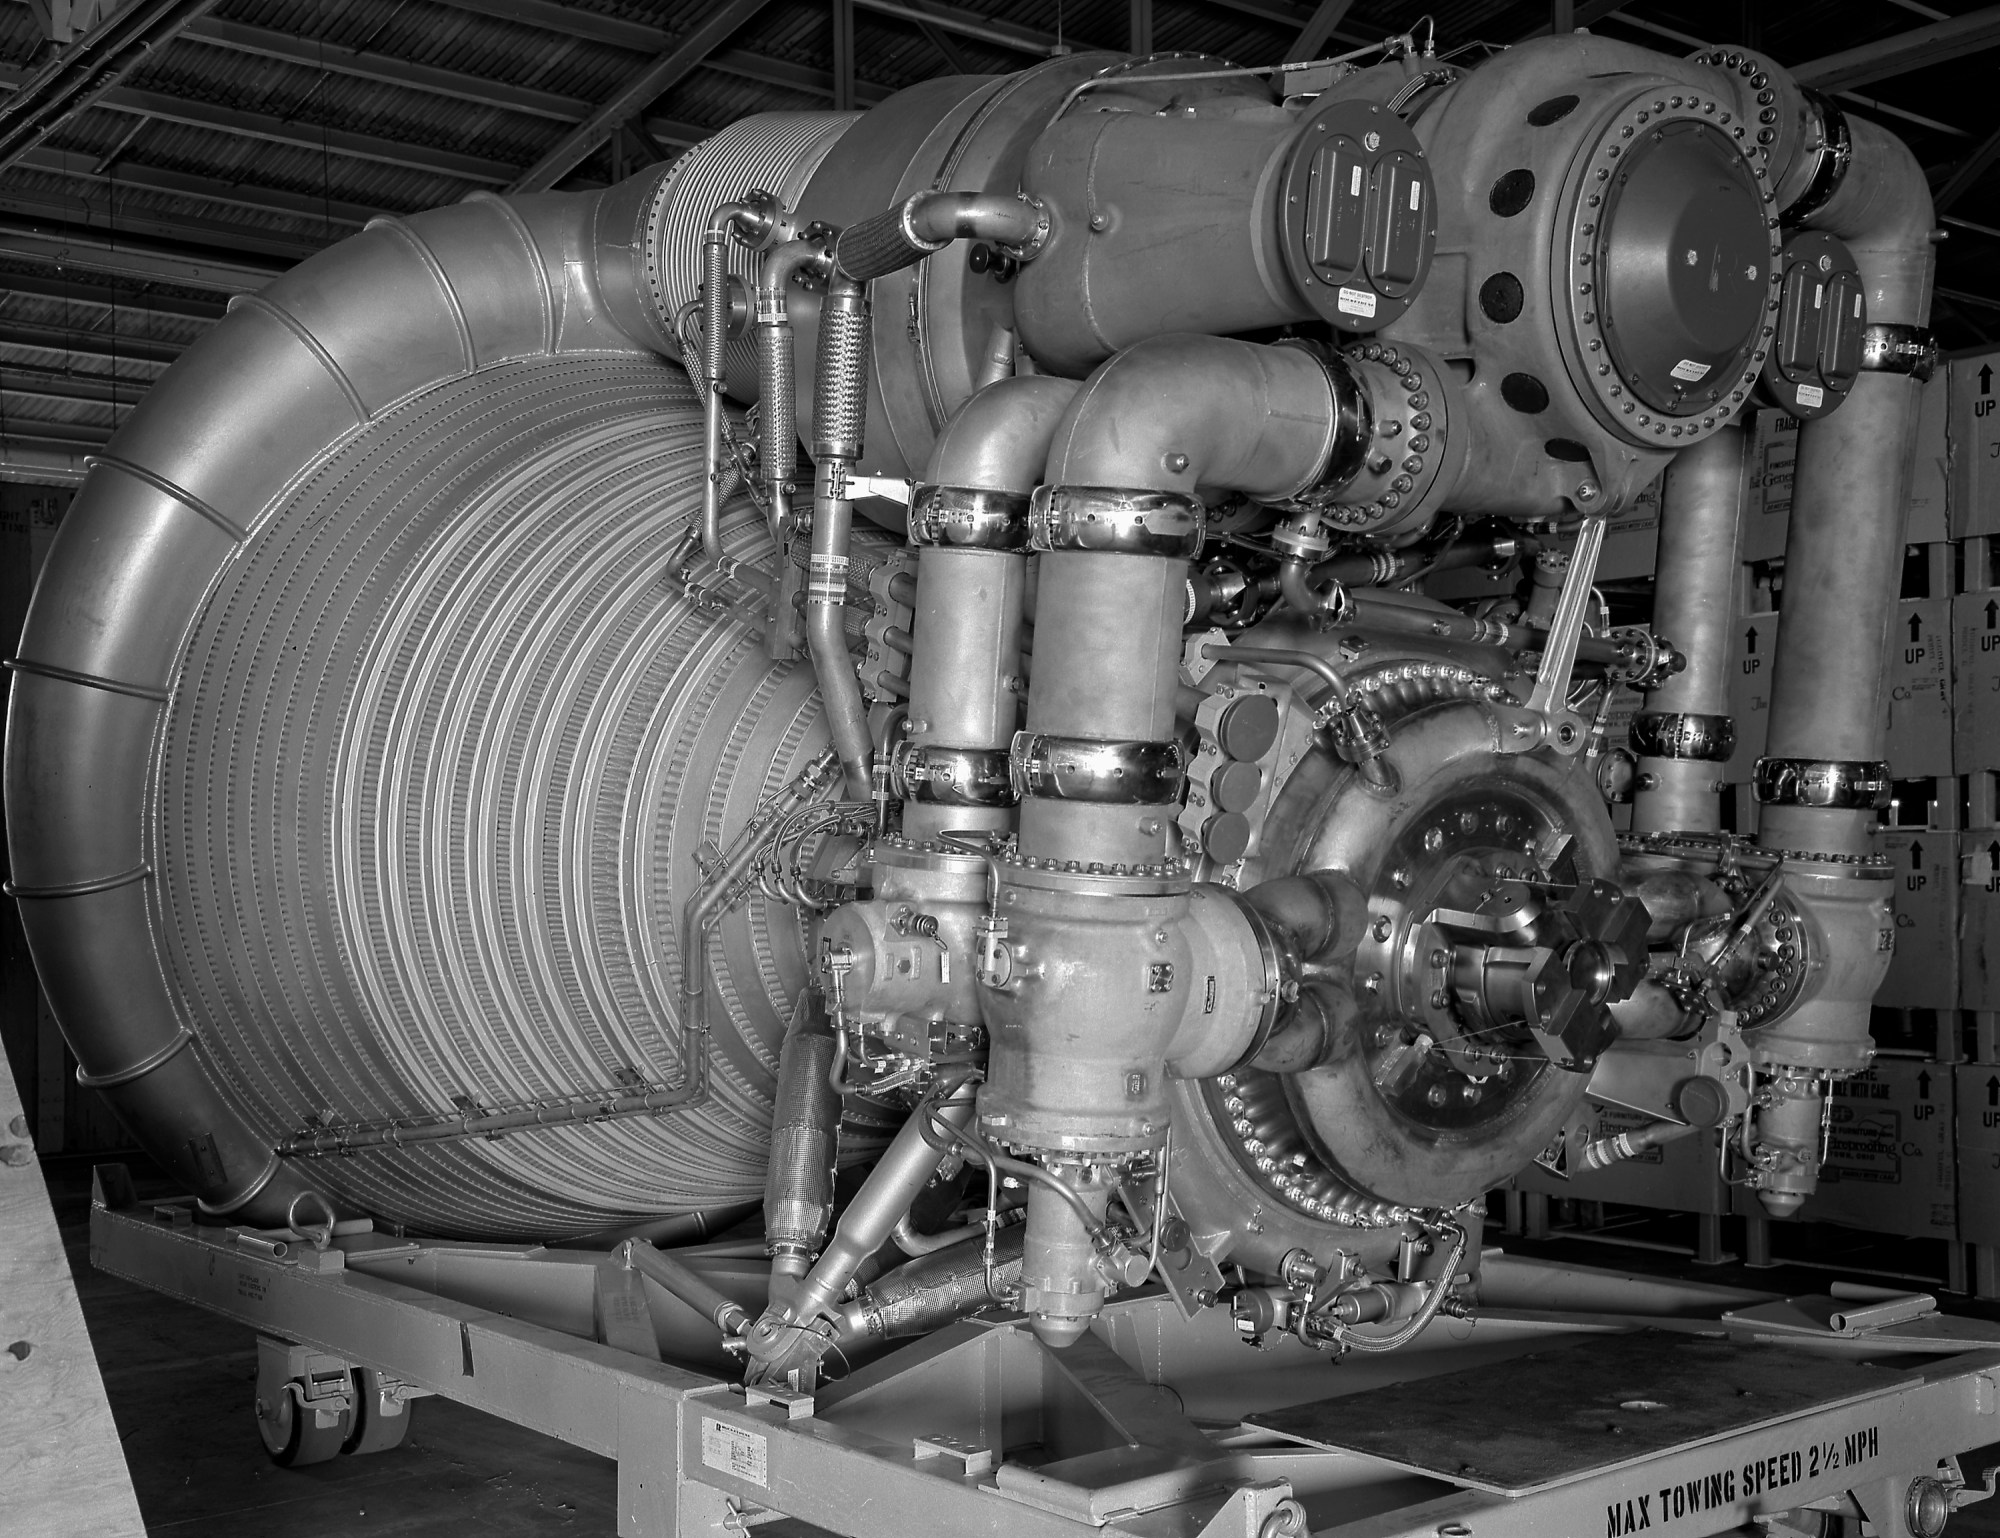 hight resolution of closeup of single f 1 engine showing parts inside